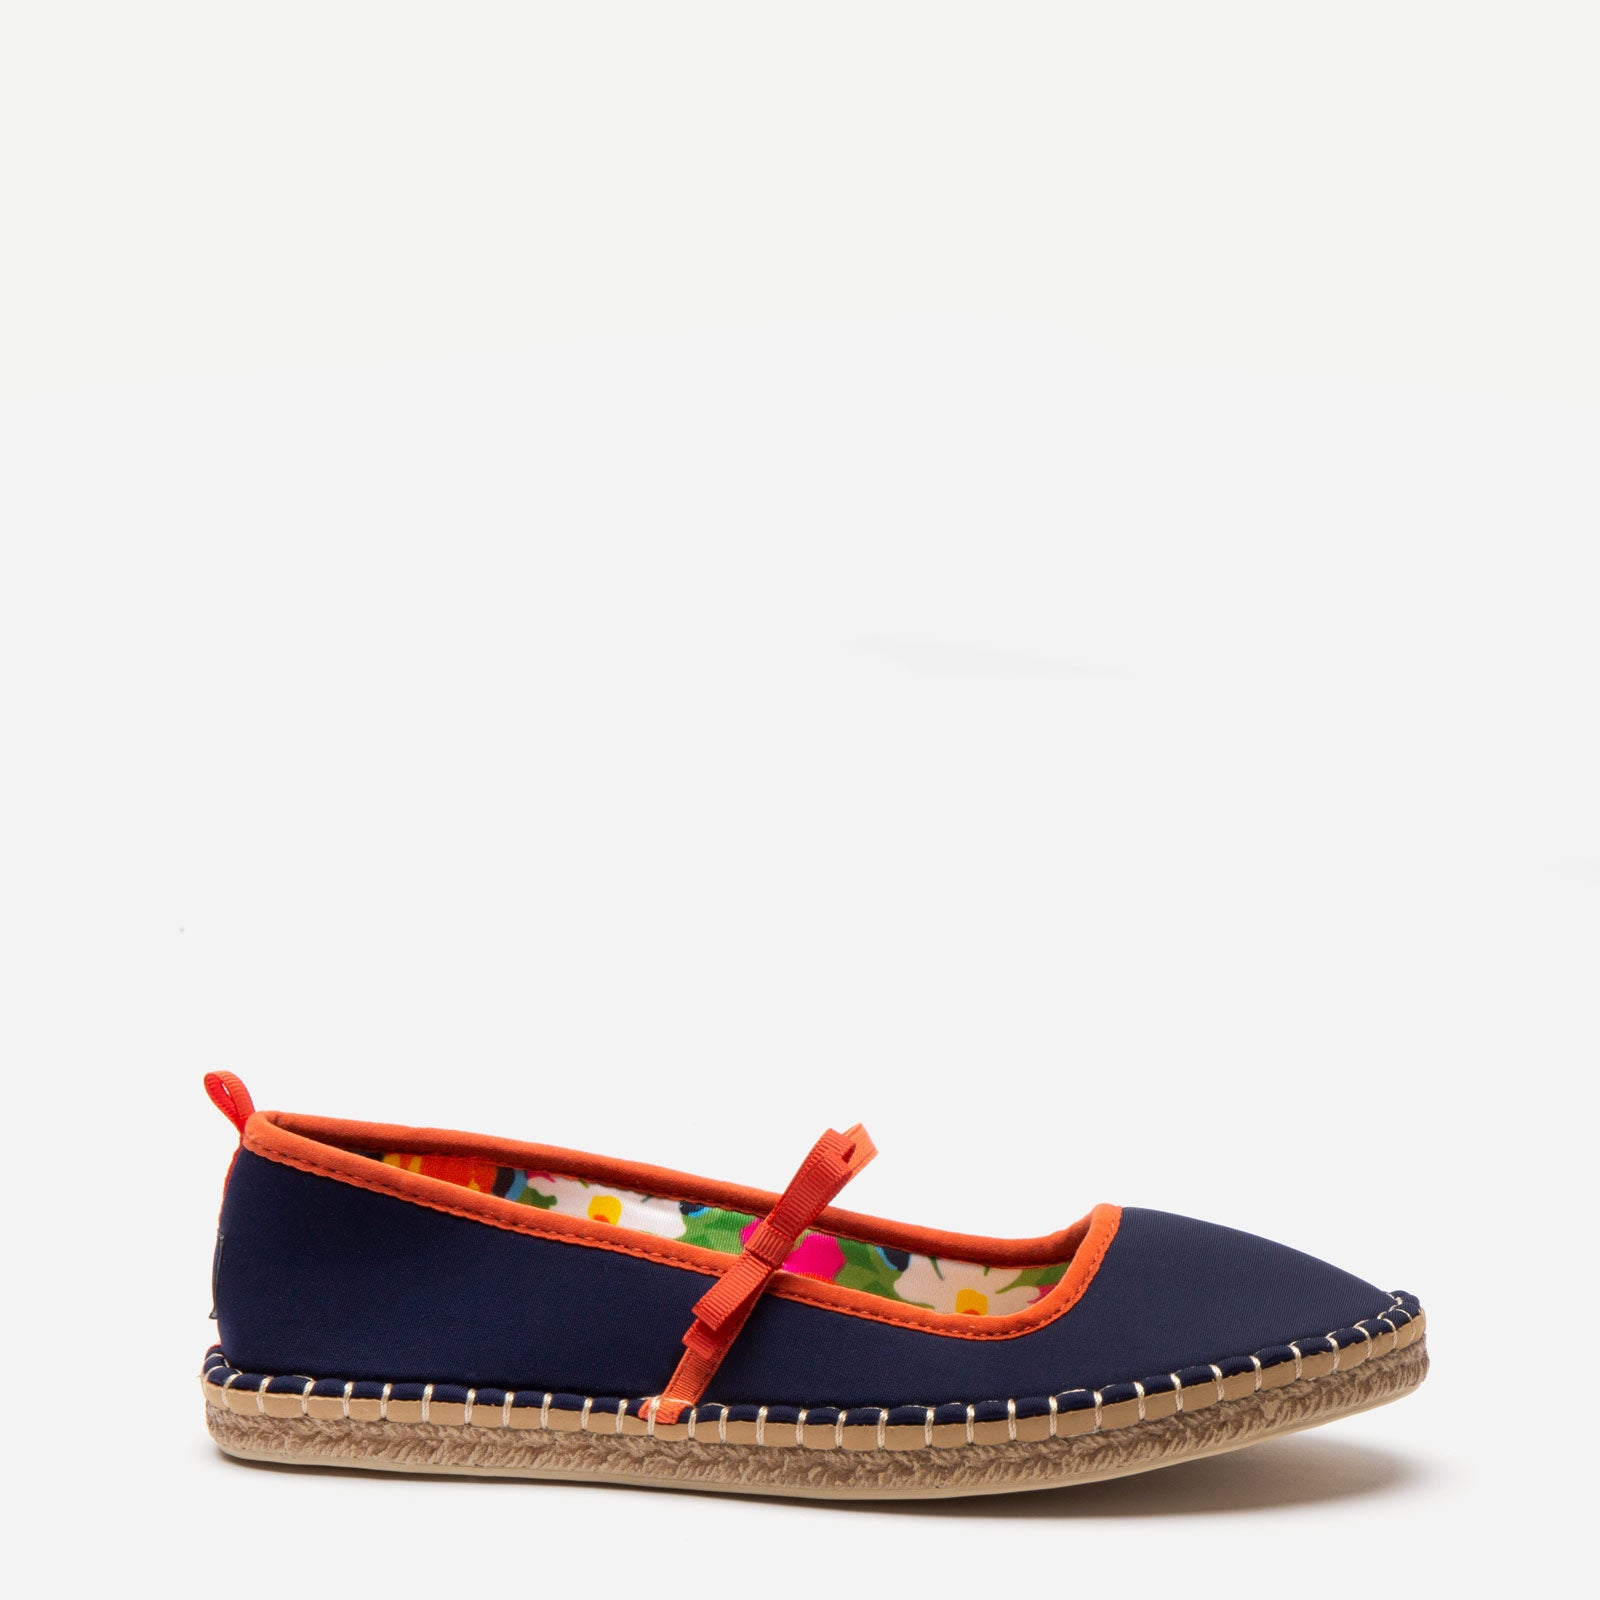 Sea Star Mary Jane Navy Bright Floral